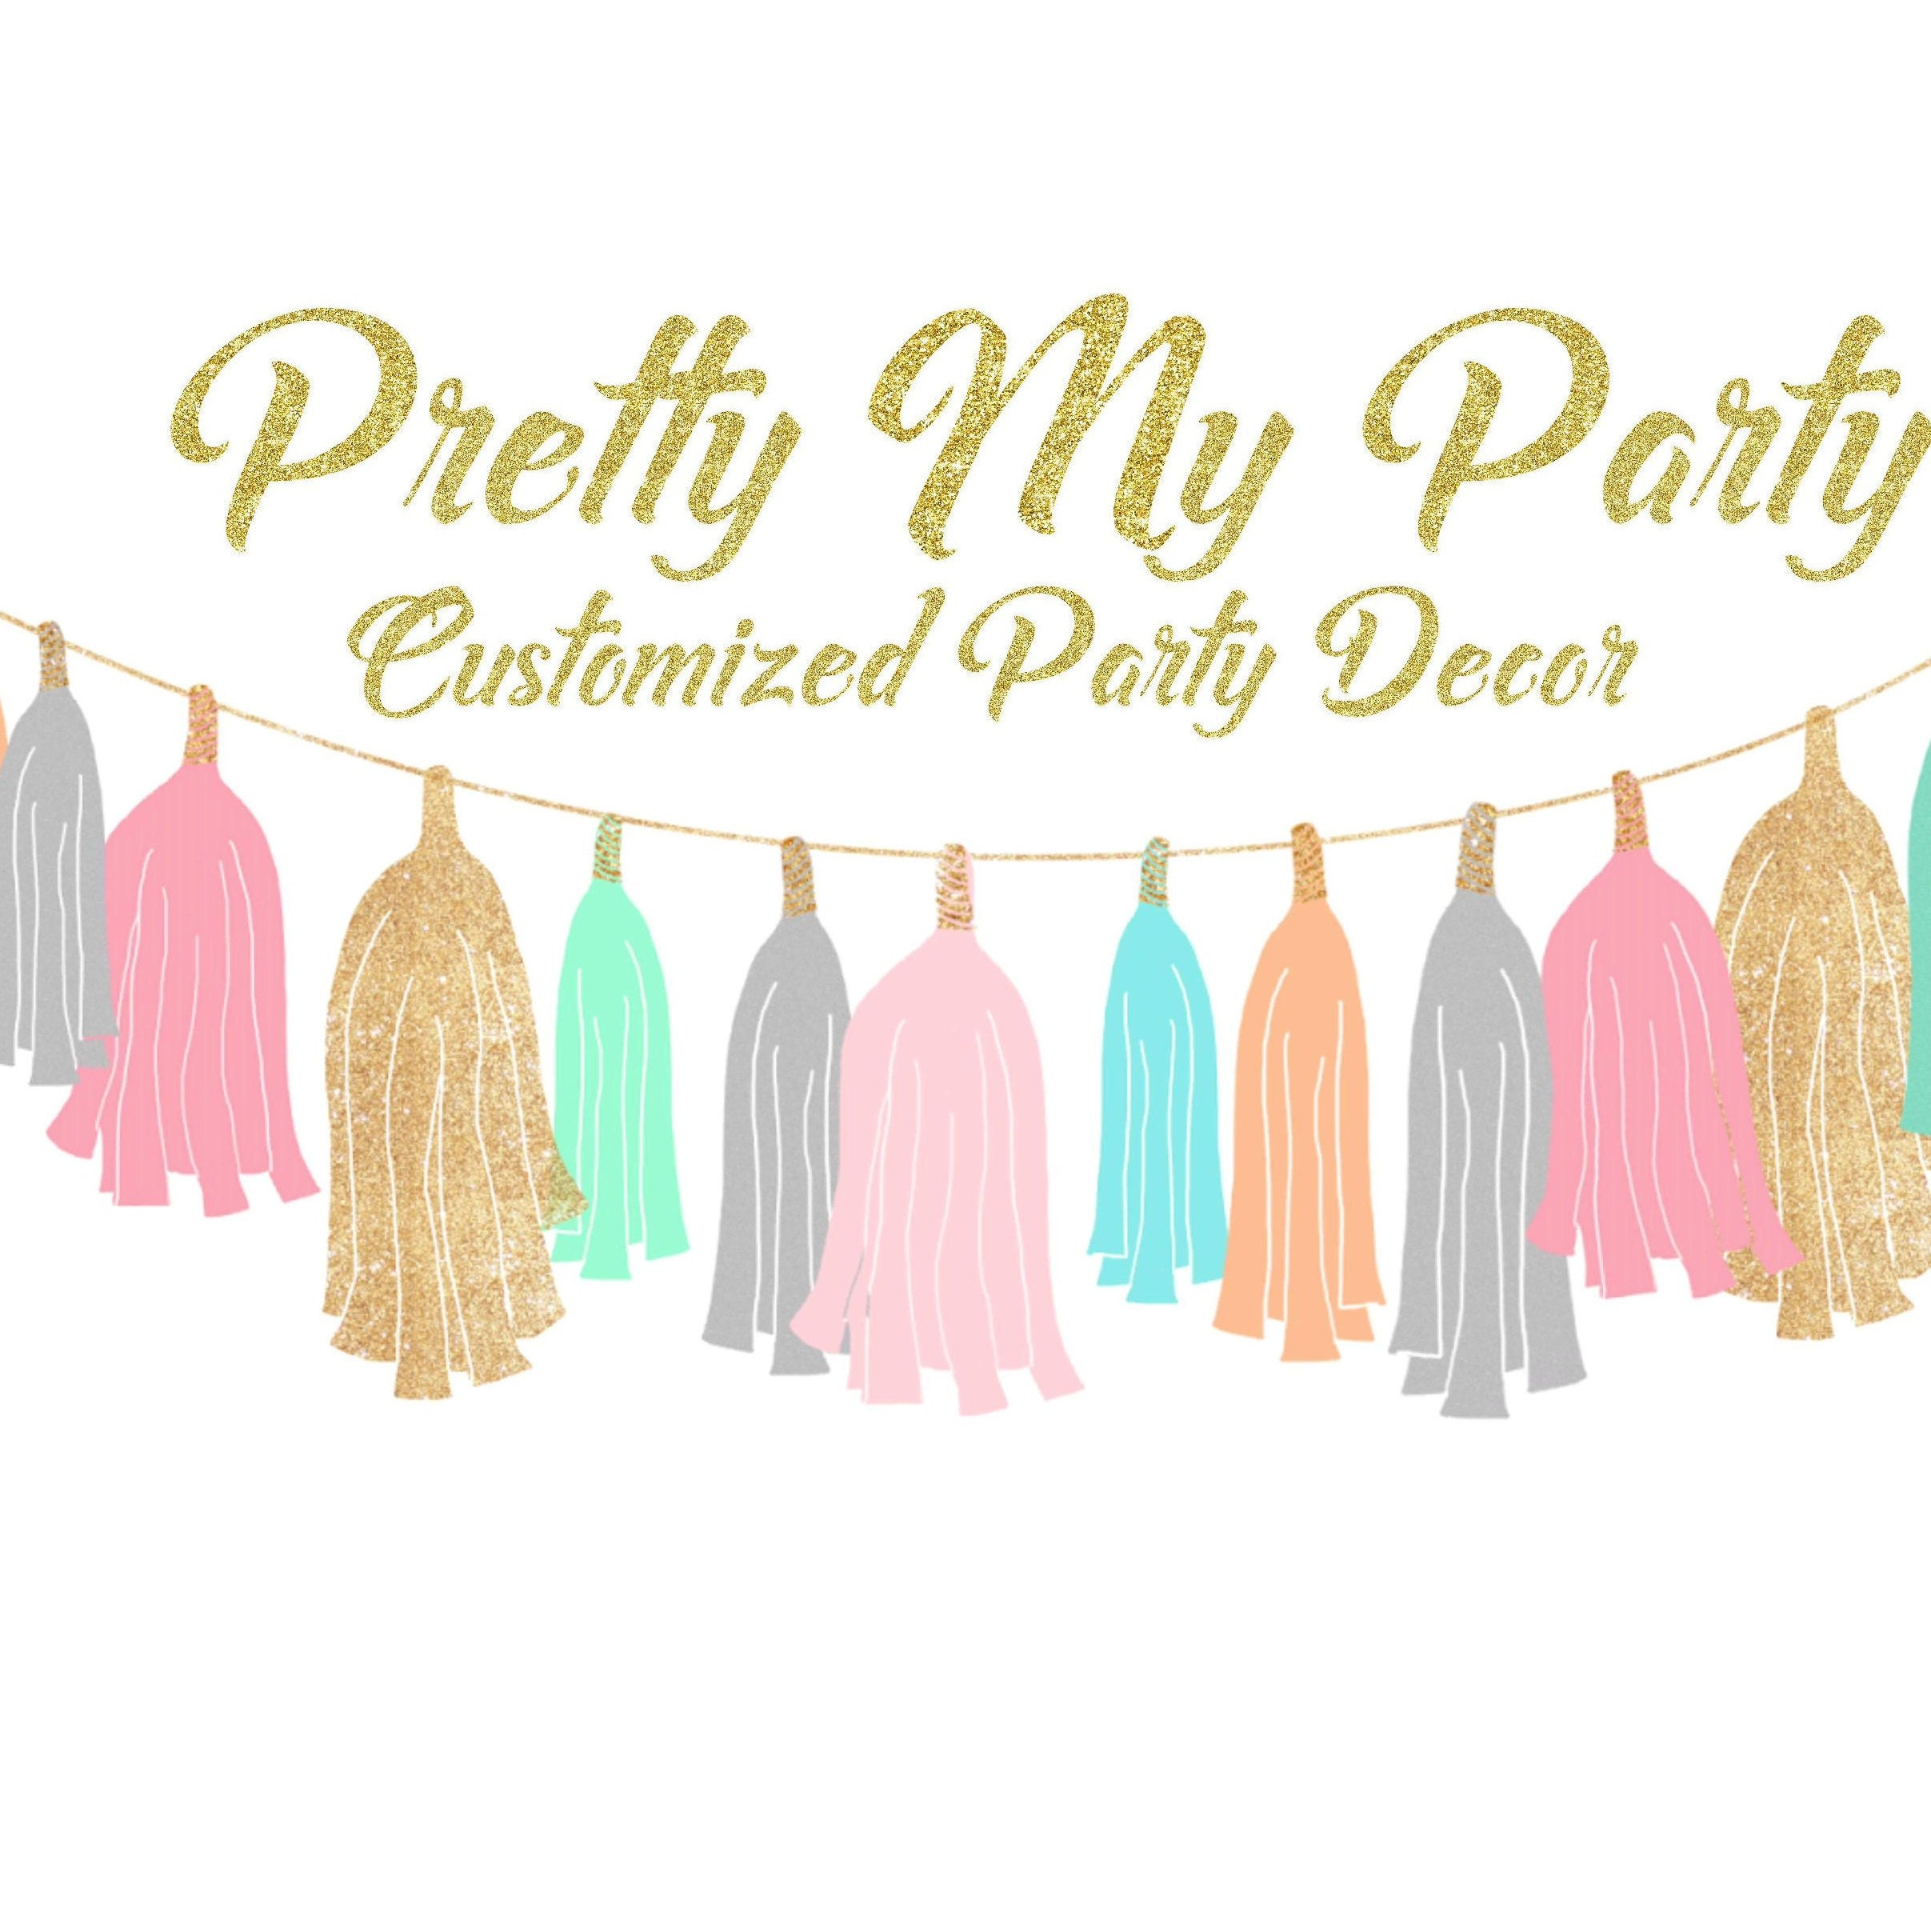 Custom Made Party Decor By Prettymypartydecor On Etsy